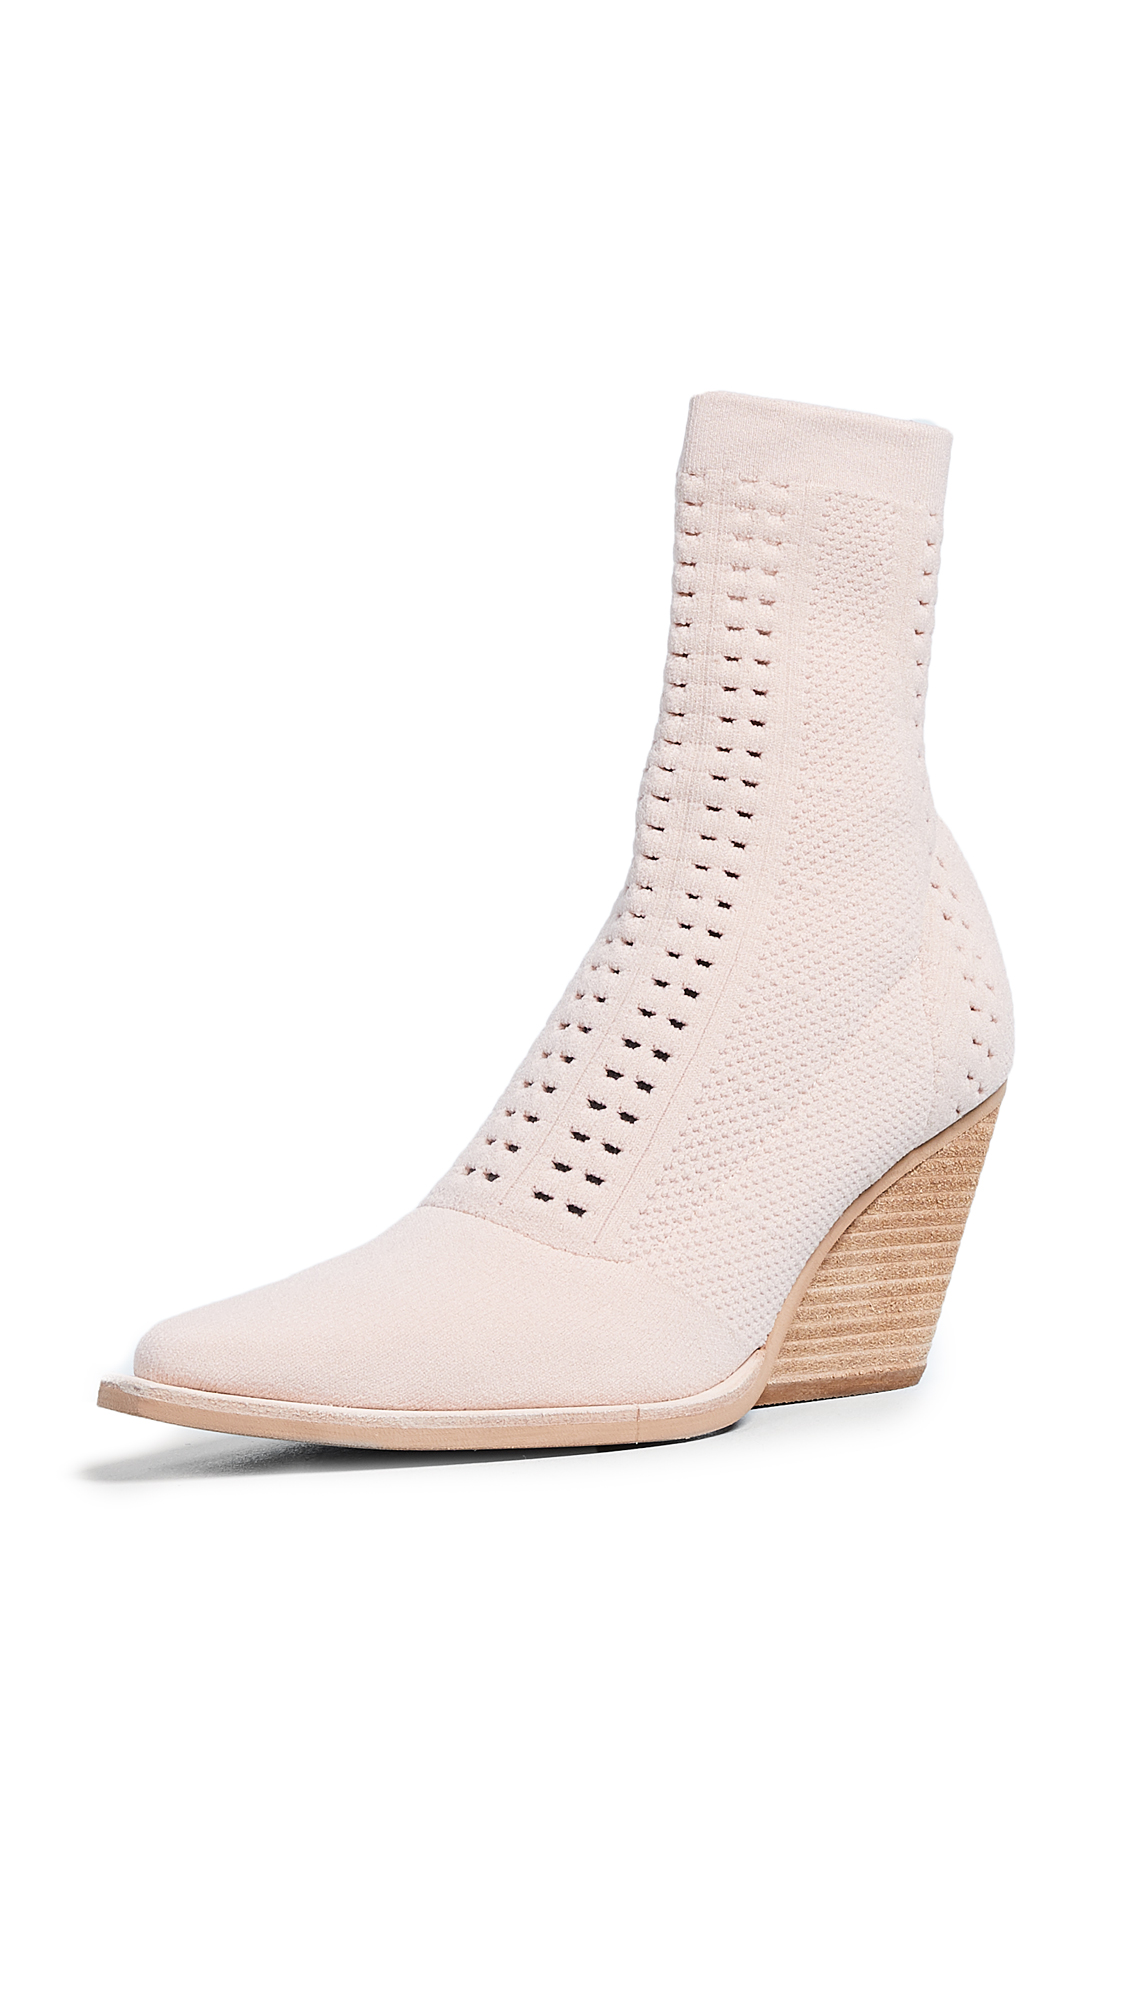 Jeffrey Campbell Walton Point Toe Boots - Pink Natural